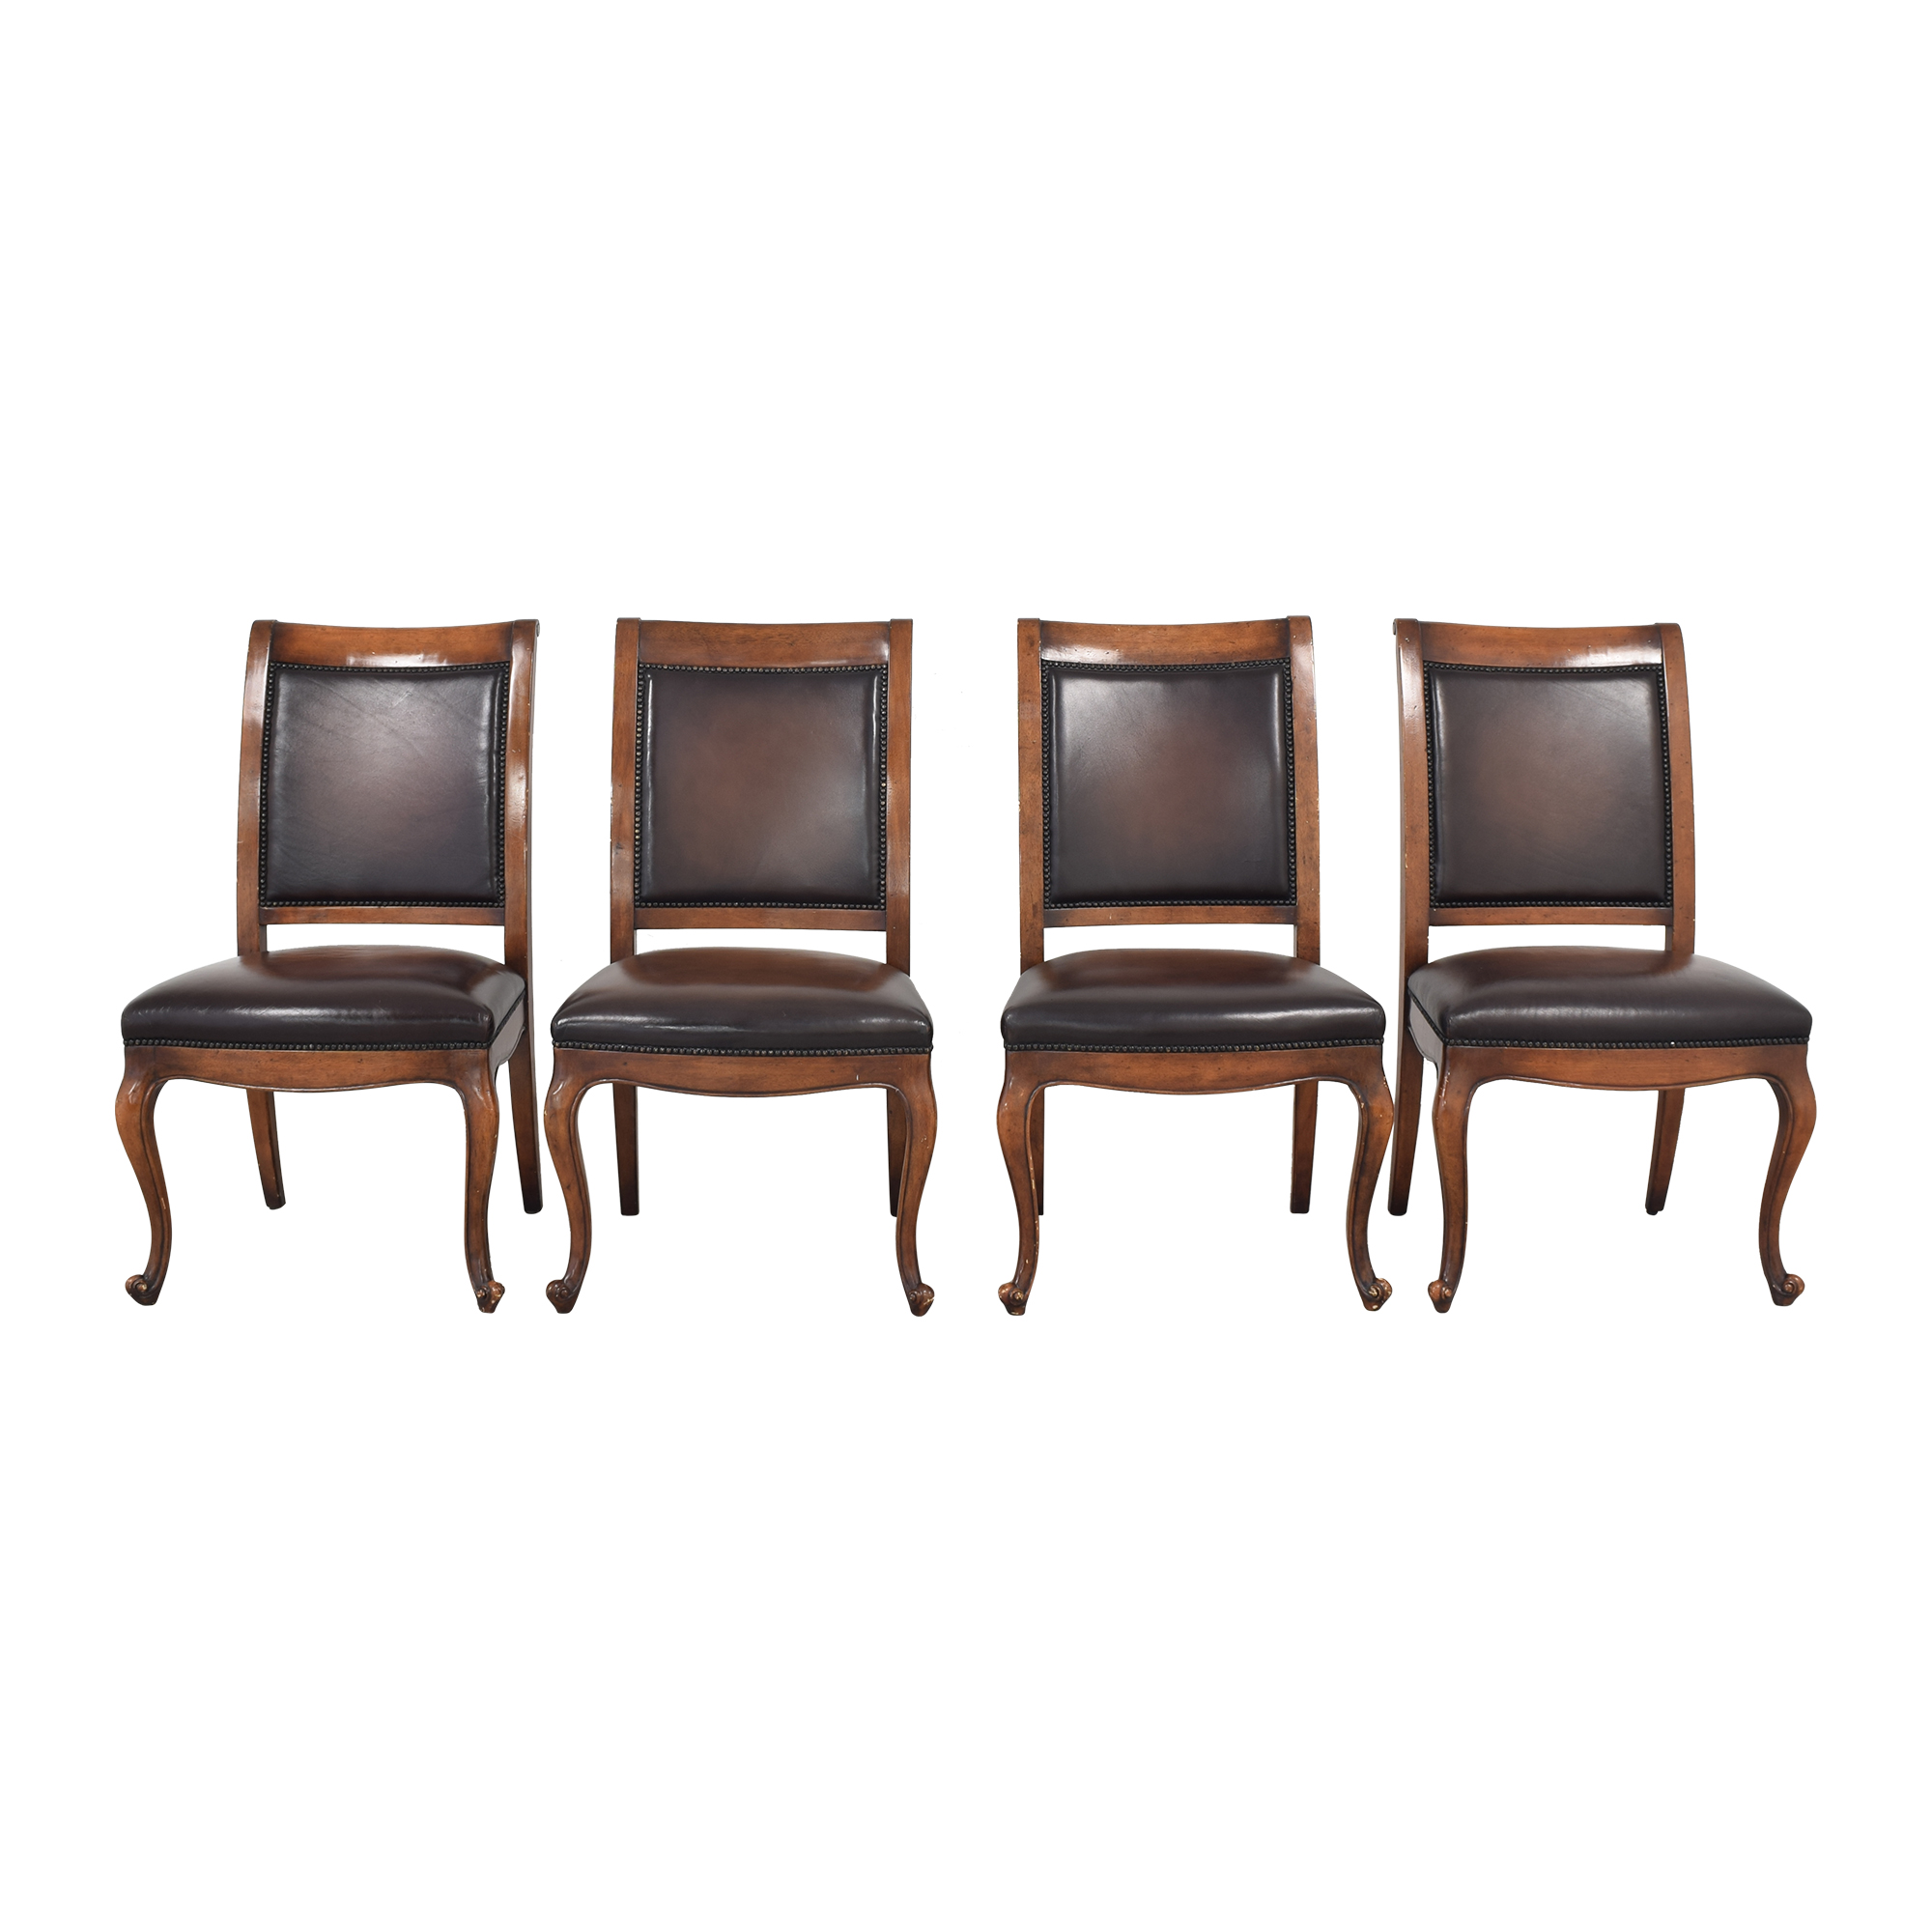 Theodore Alexander Dining Chairs / Dining Chairs